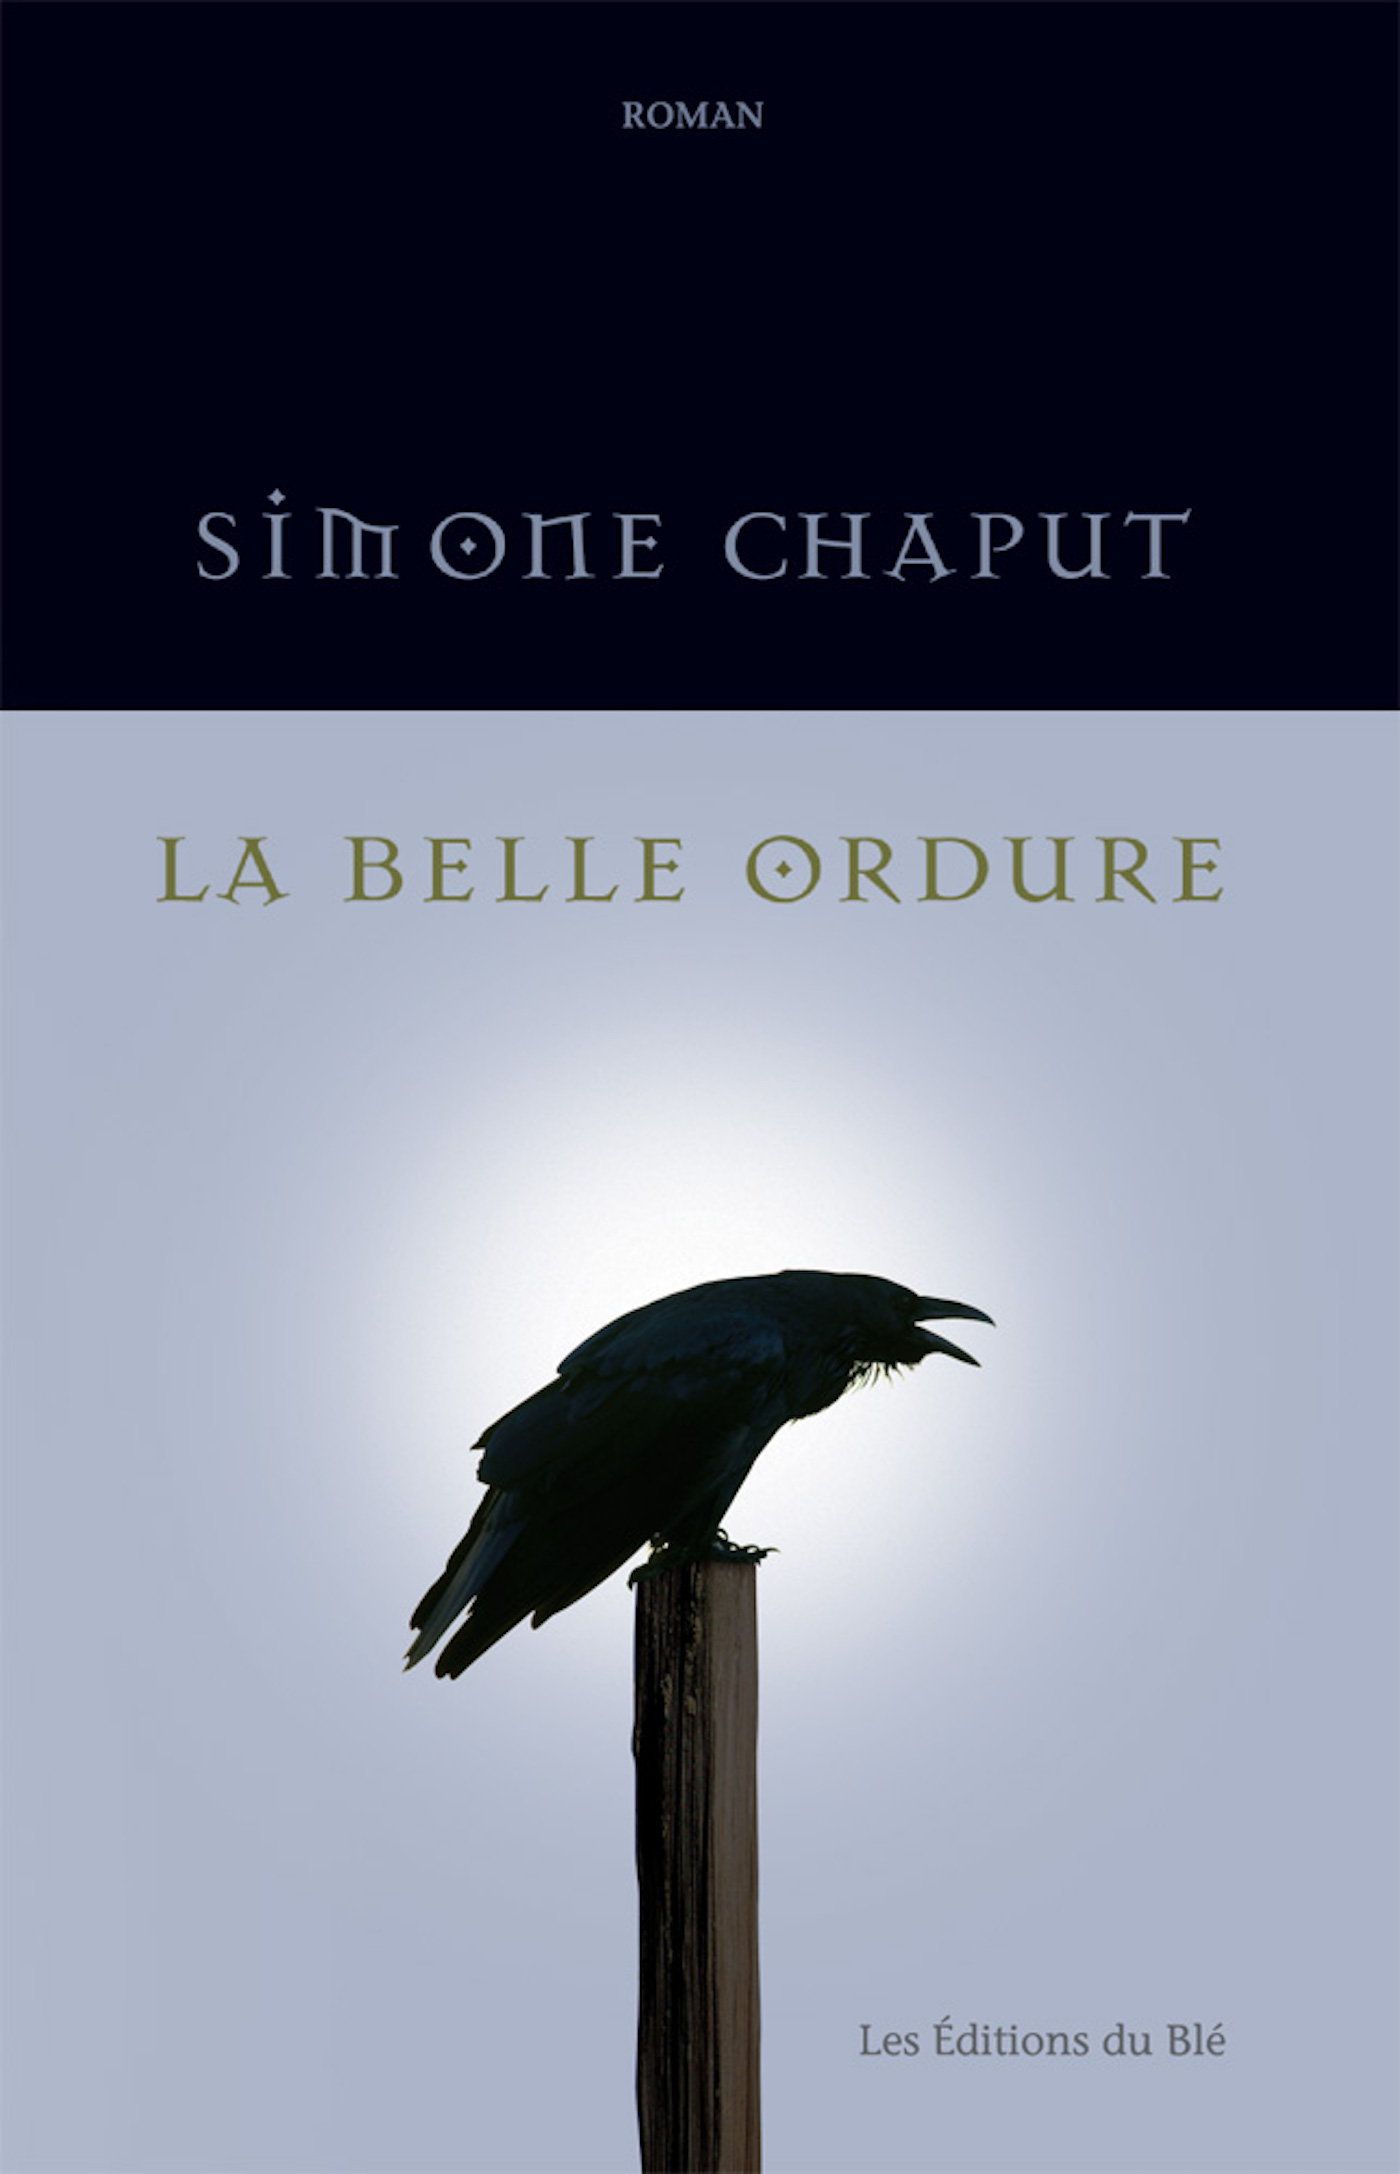 La belle ordure